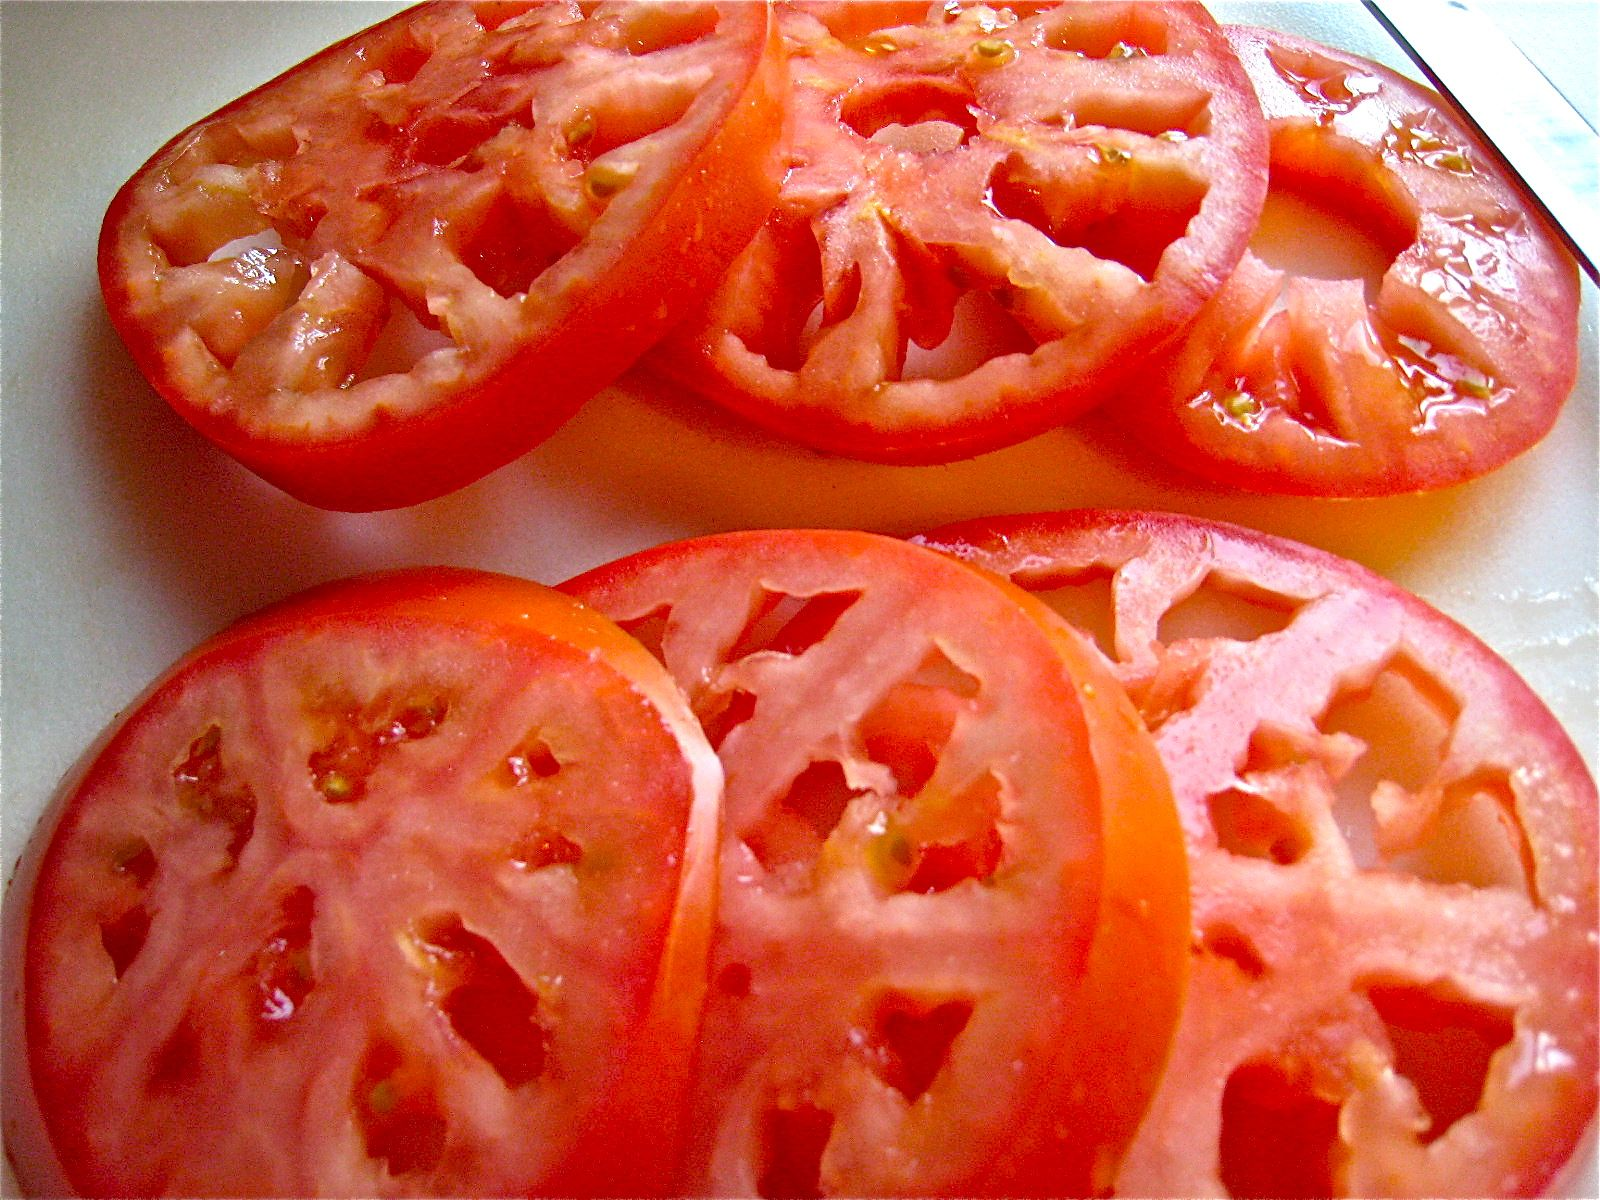 delectalicious how to slice a tomato